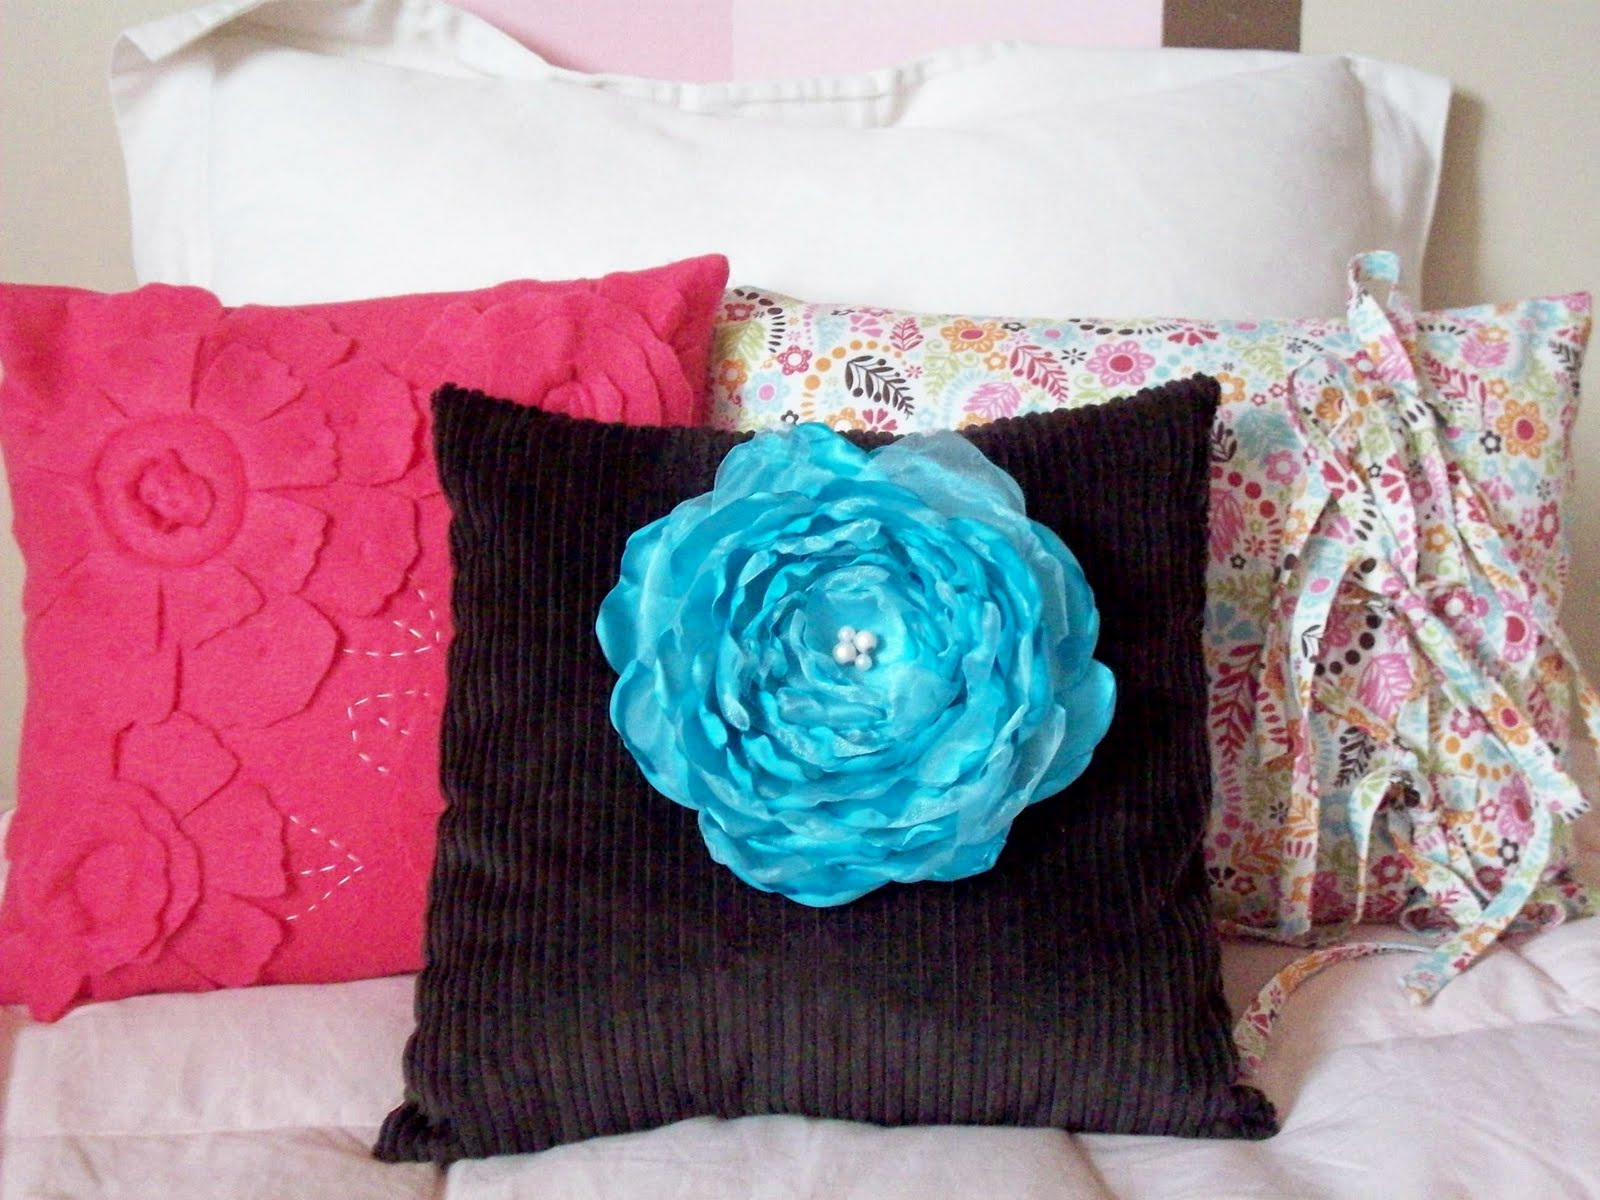 blue rose at sofa pillows